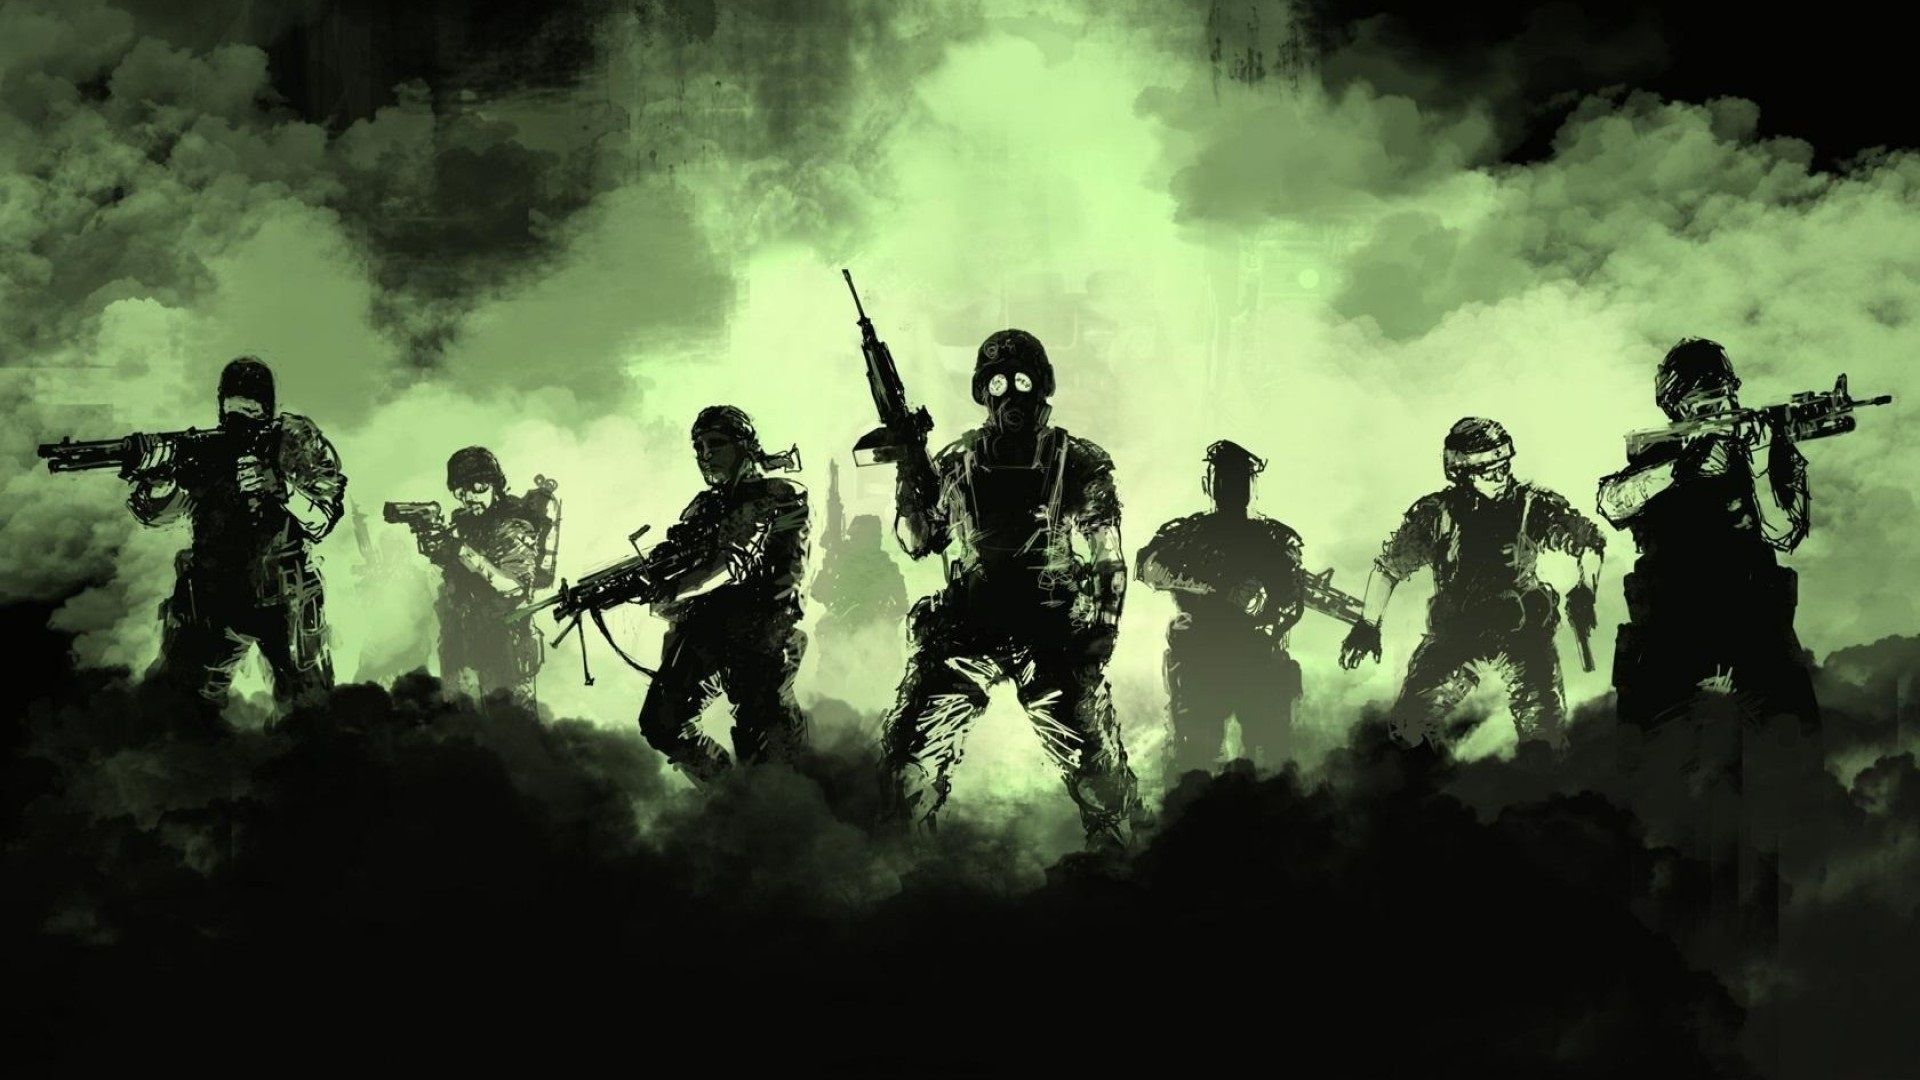 HD Army Wallpapers and Background Images For Download hd in 2019 1920x1080